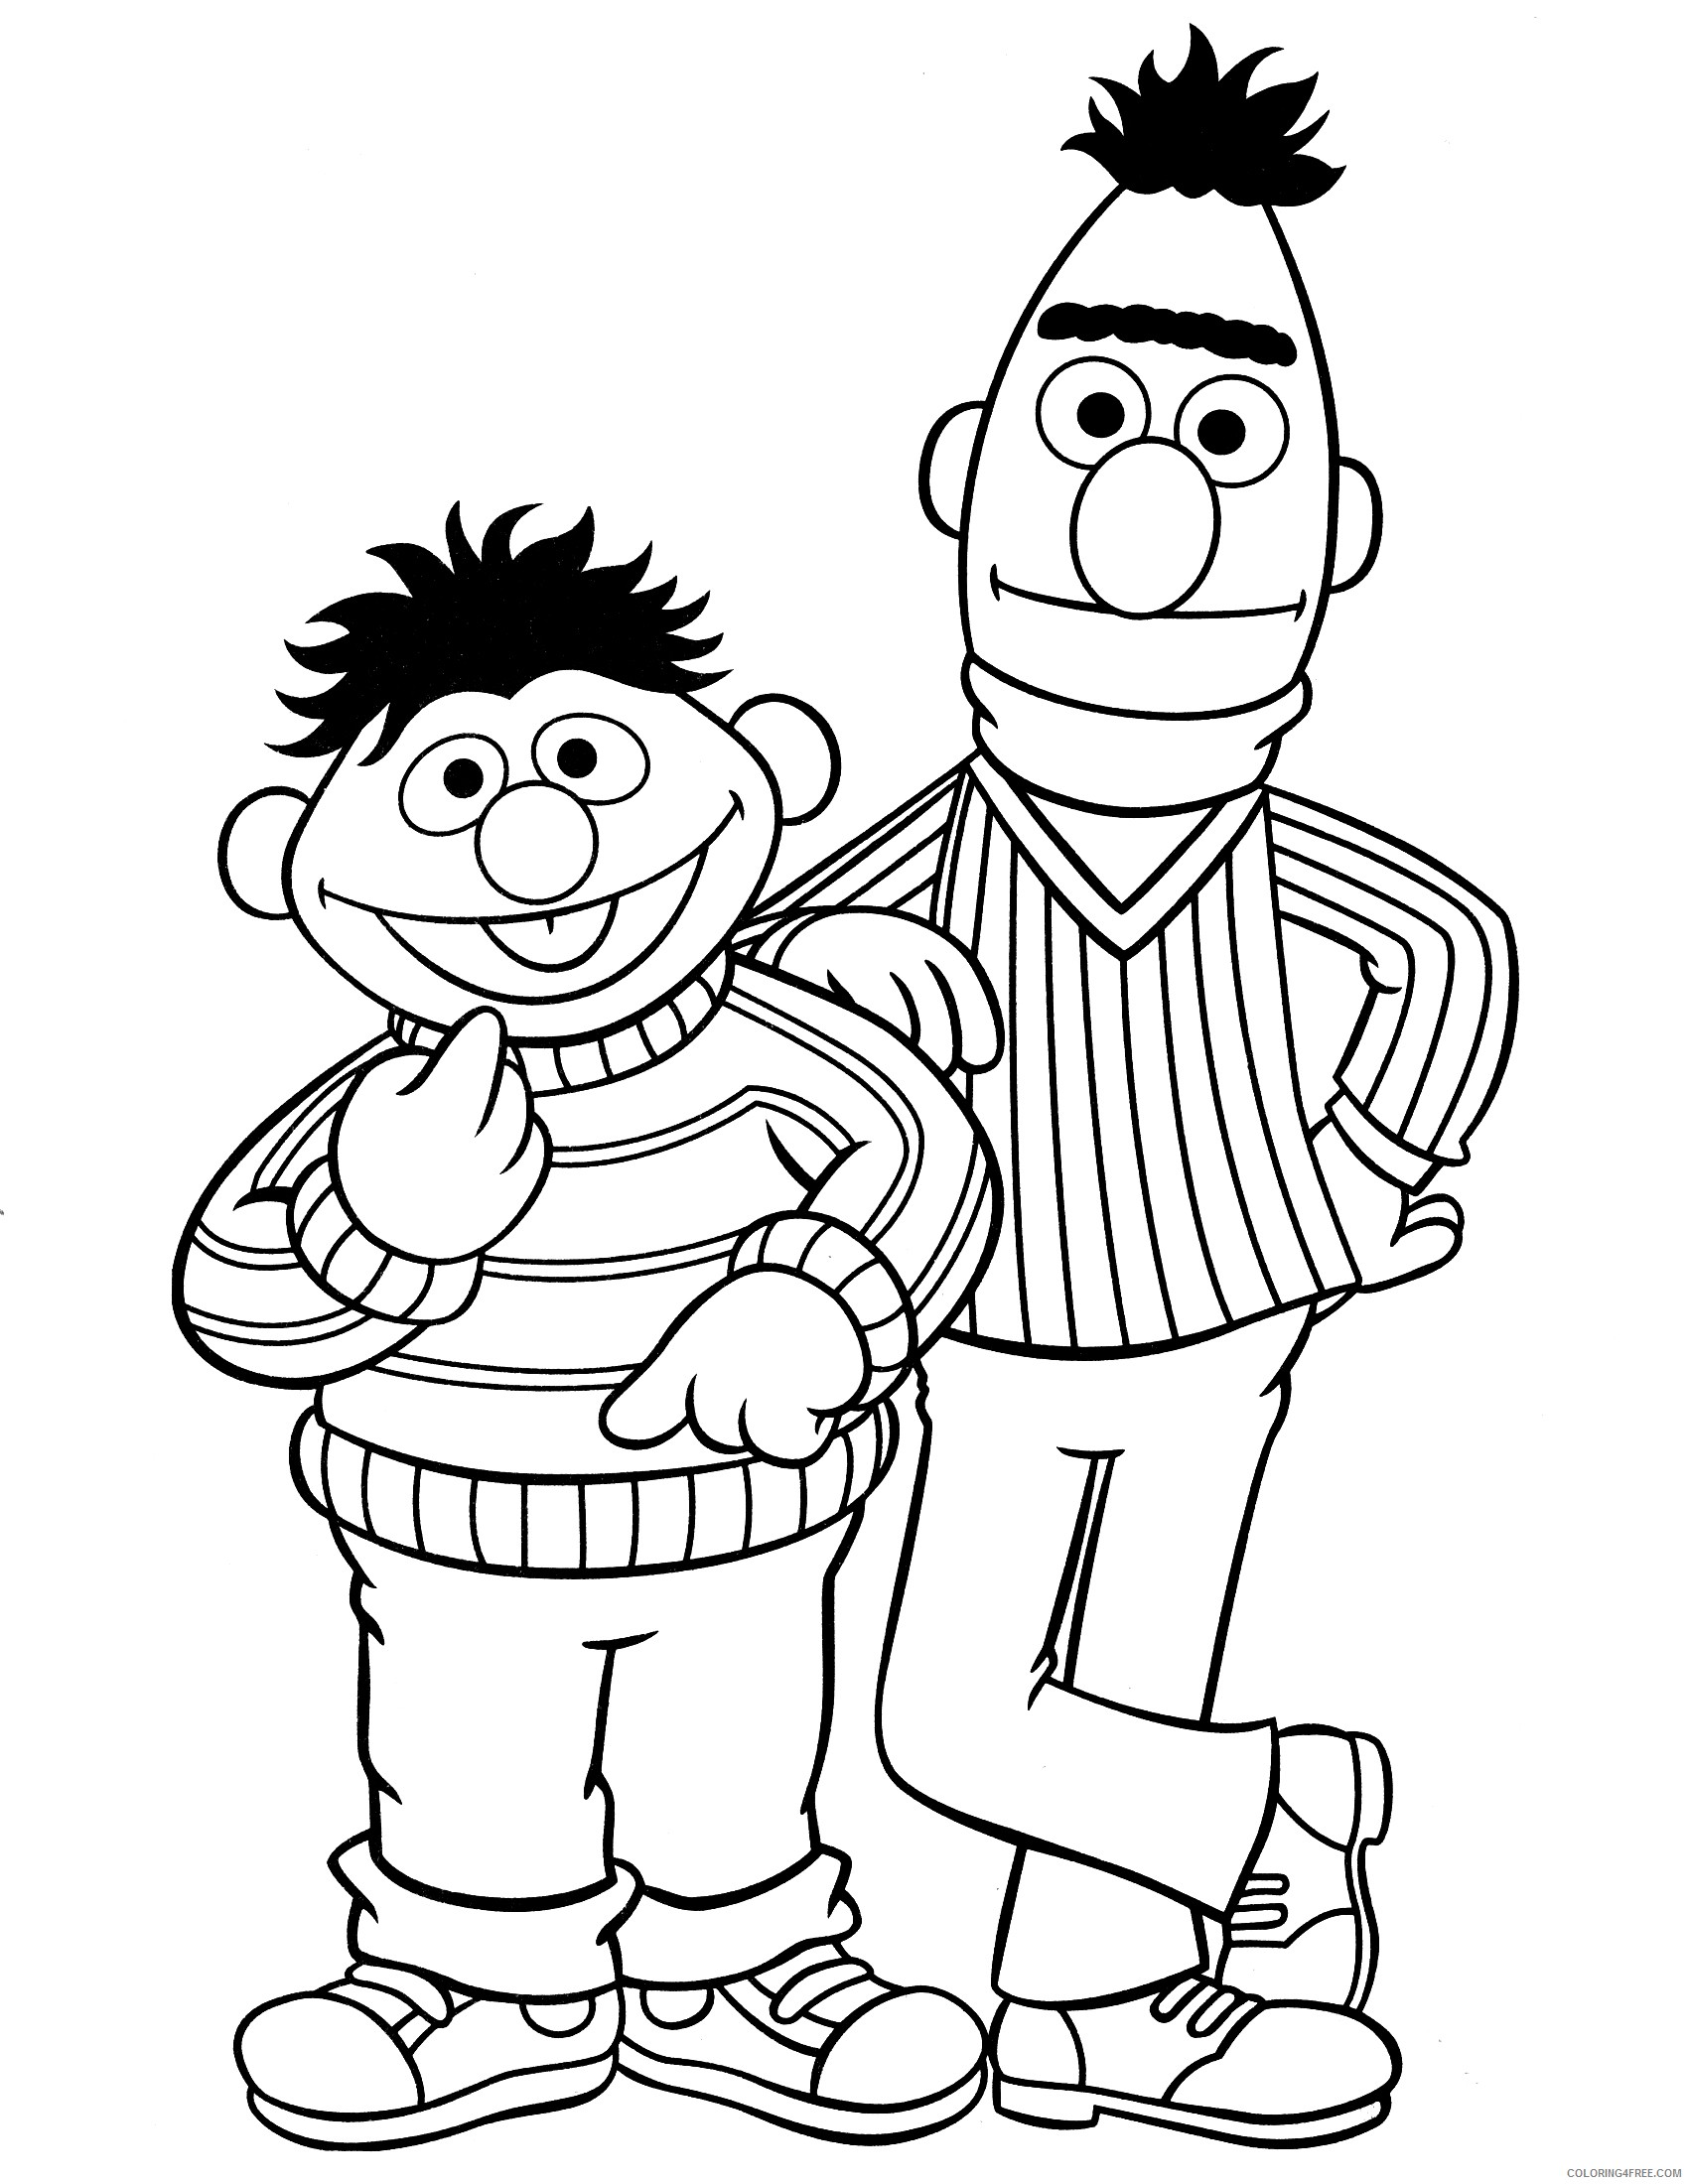 Sesame Street Valentine Coloring Pages | Valentine coloring pages ... | 2200x1700